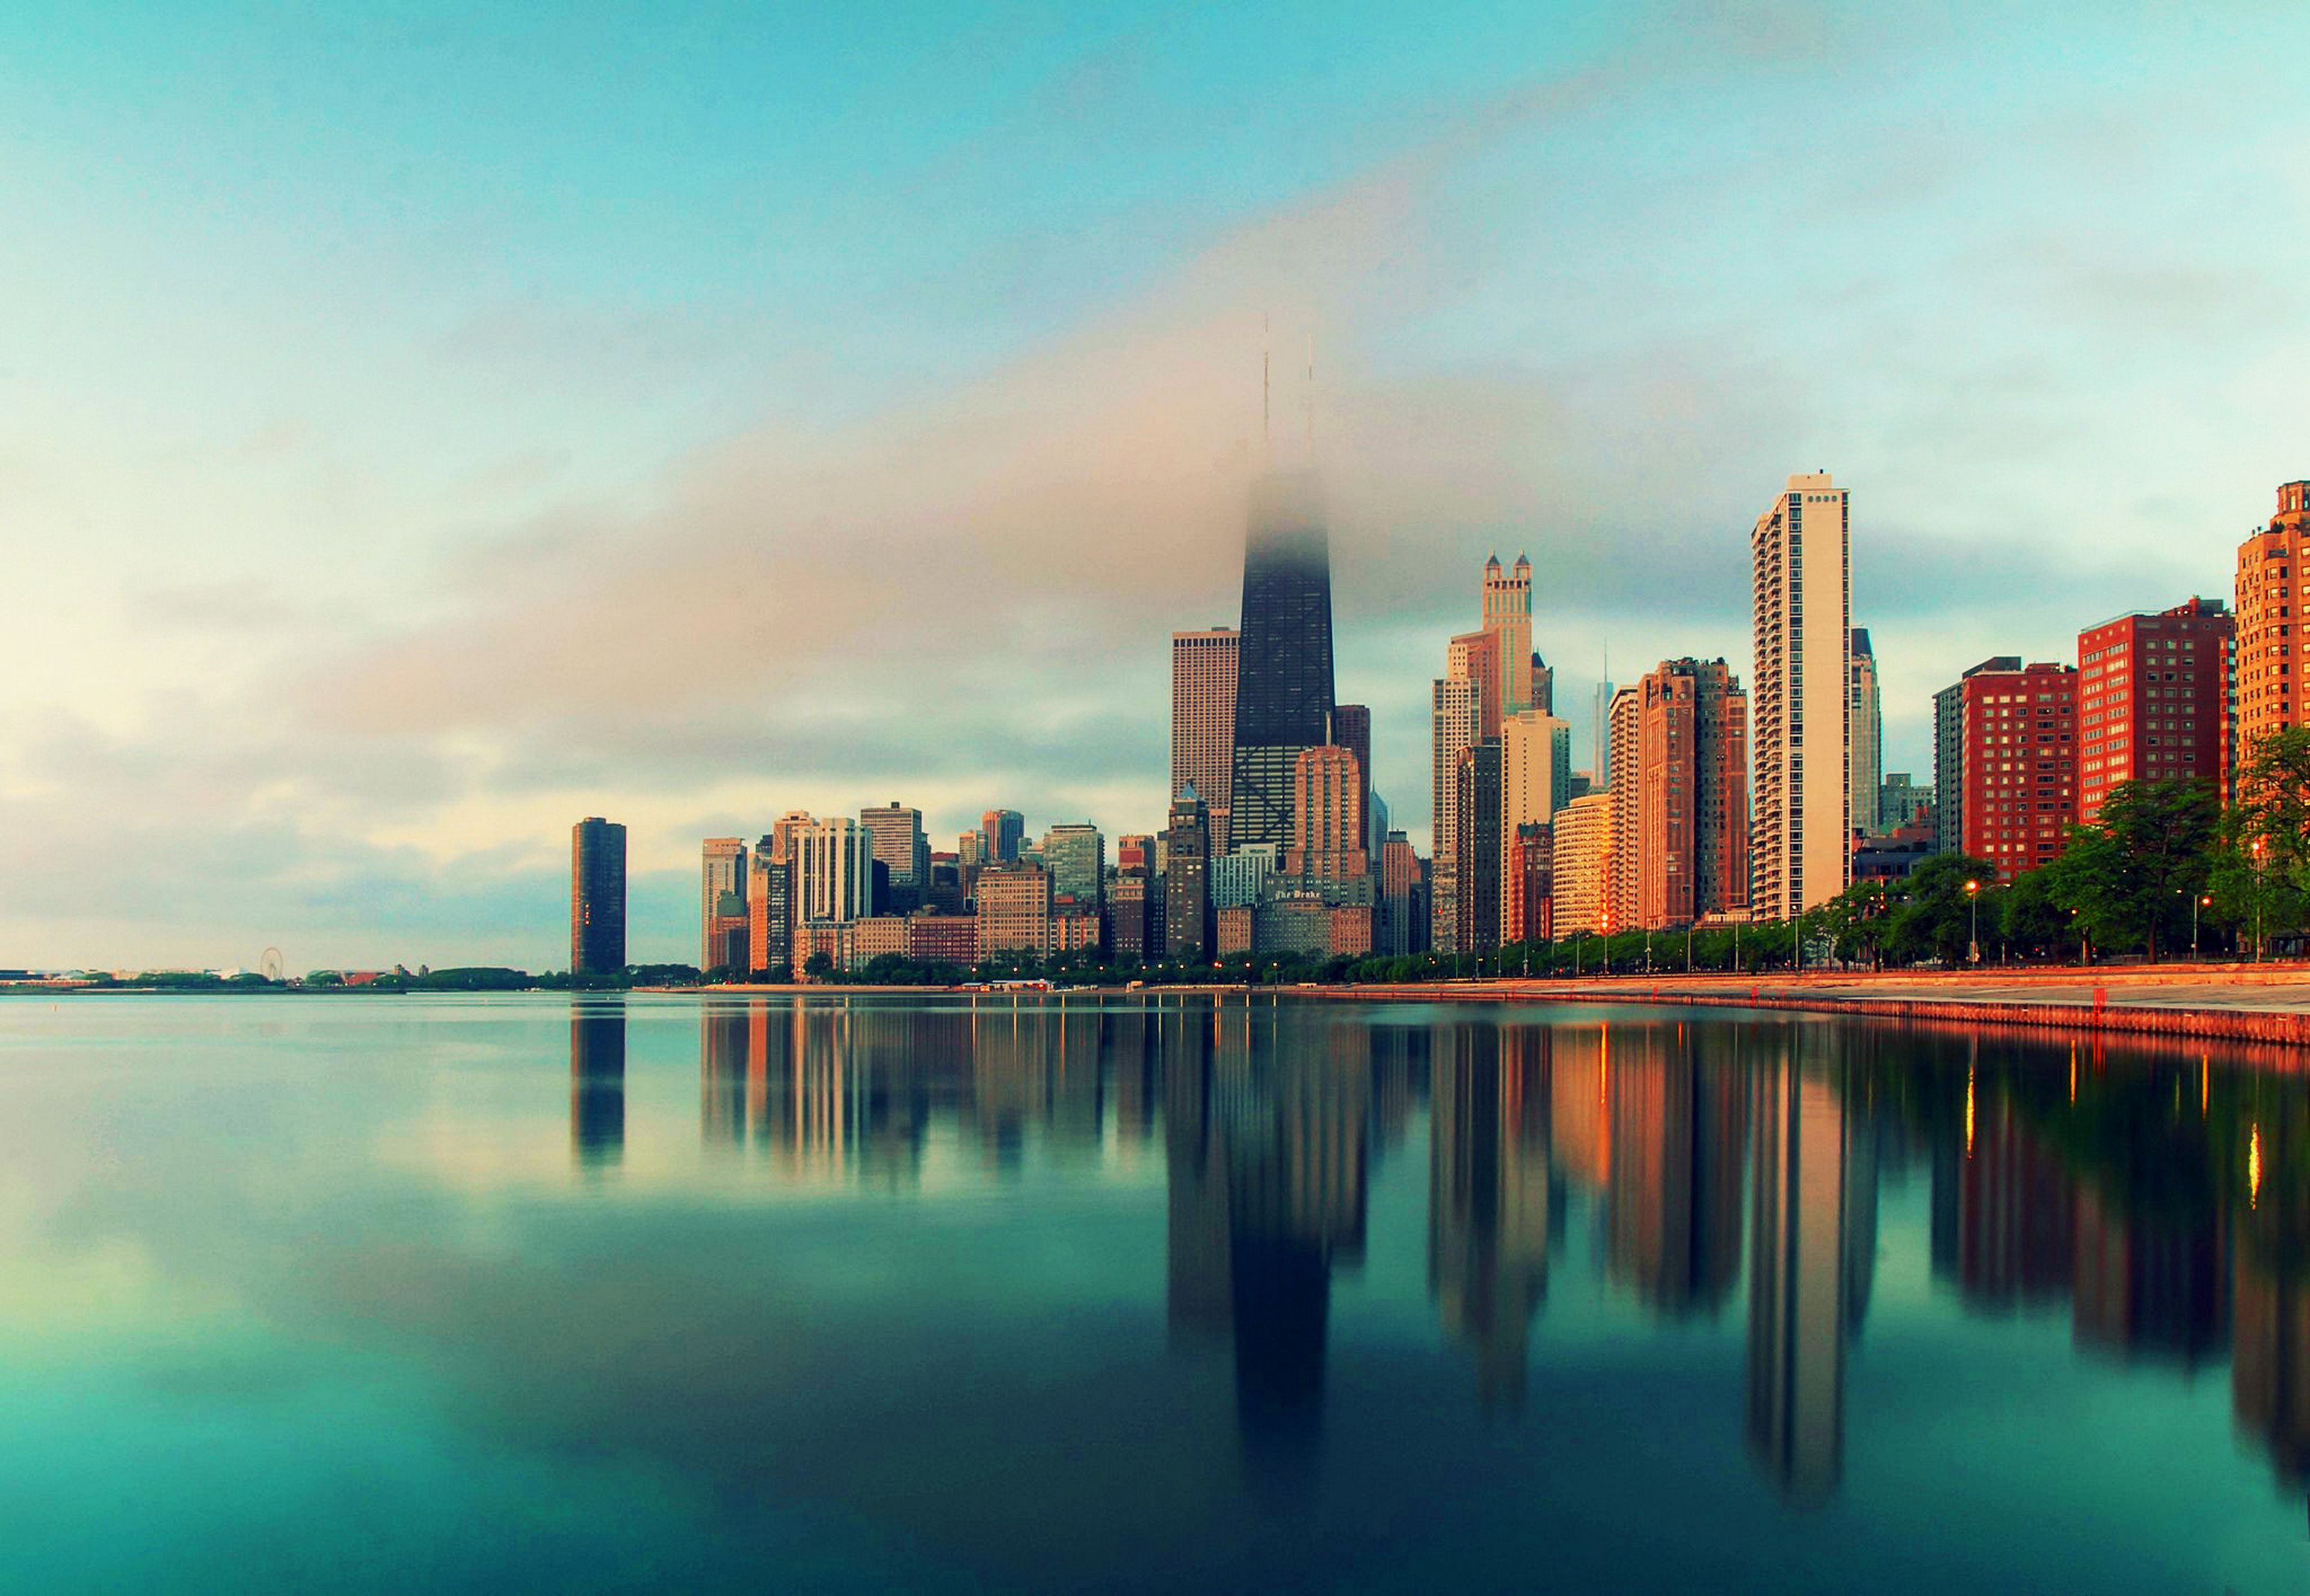 Chicago Wallpaper Full Hd For Desktop Wallpaper Cidade